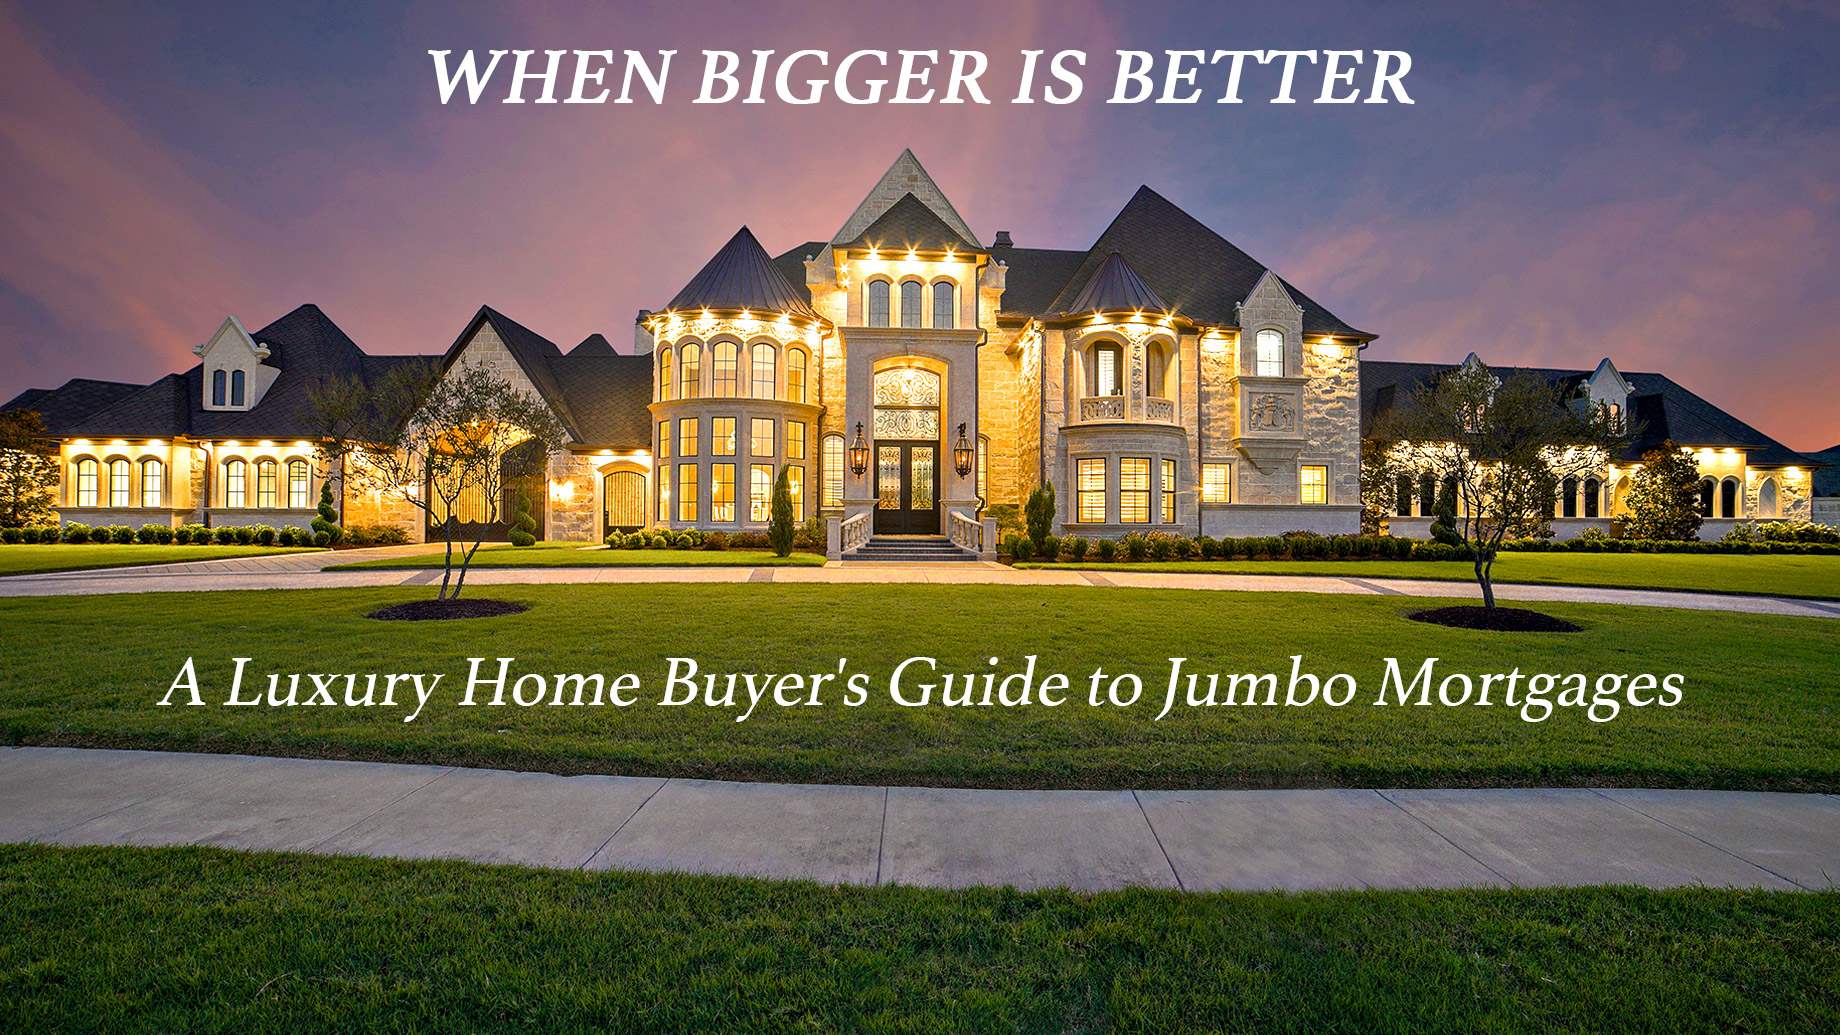 When Bigger is Better - A Luxury Home Buyer's Guide to Jumbo Mortgages